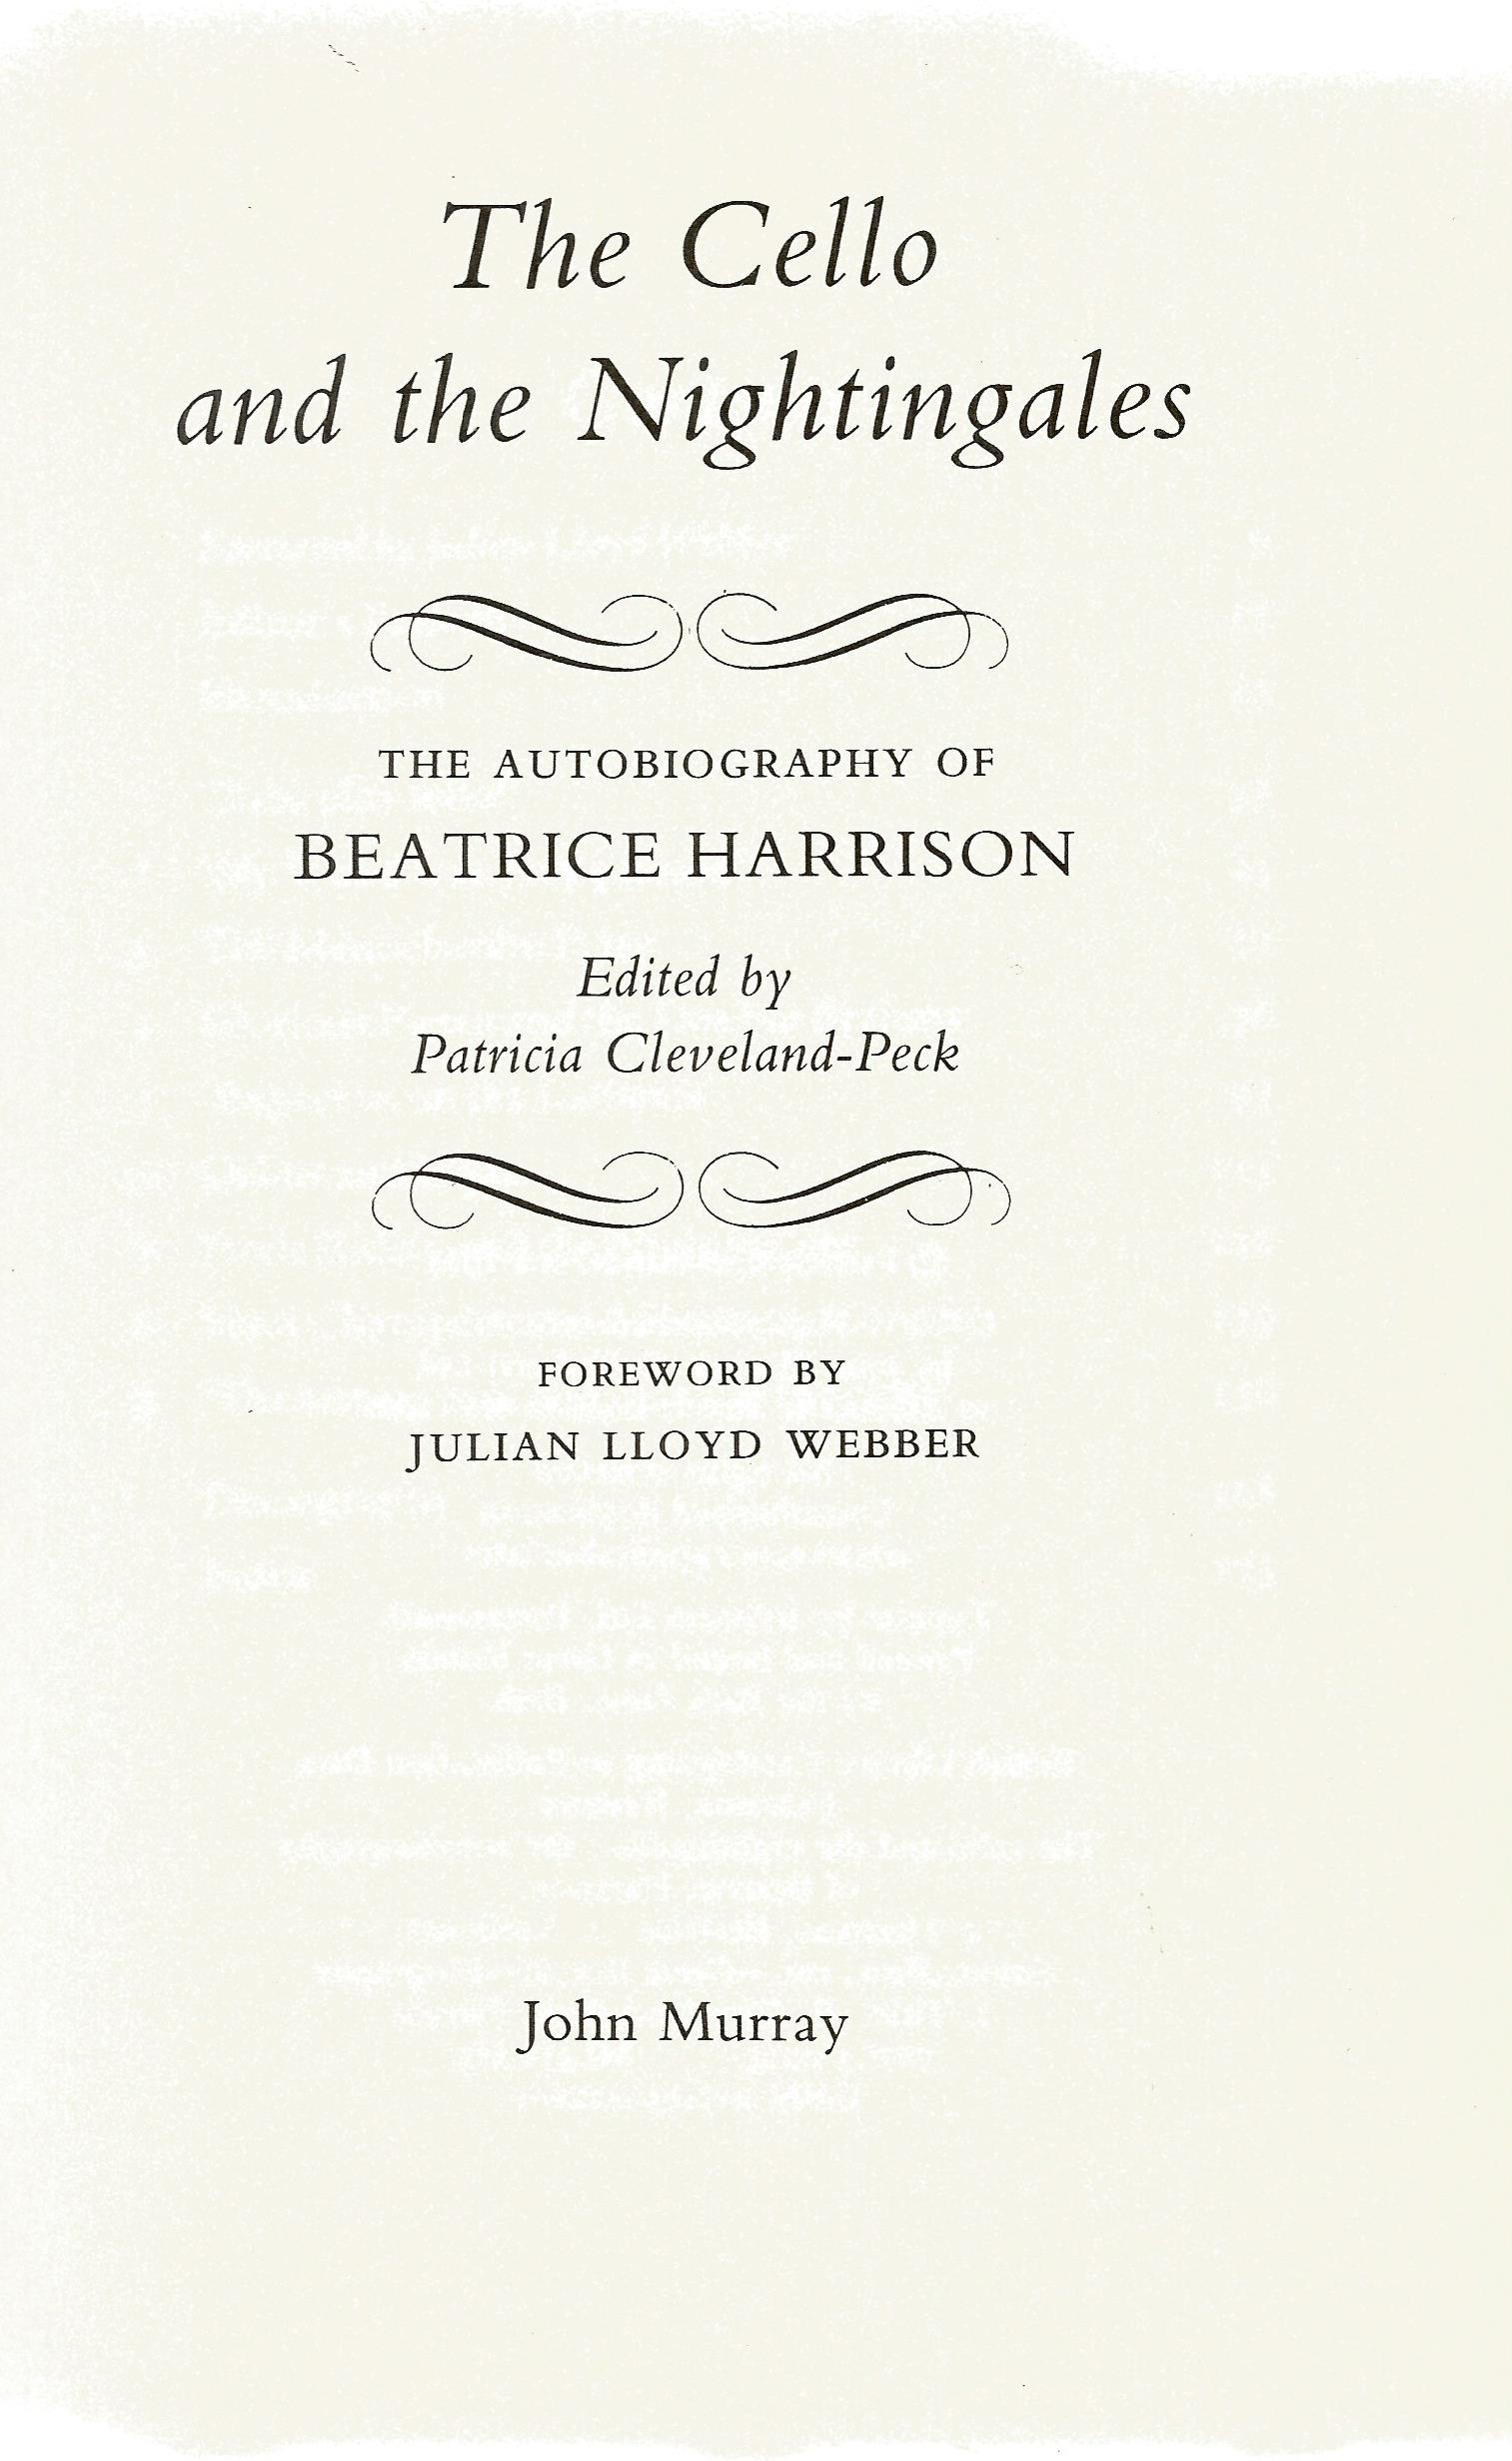 Beatrice Harrison hardback book The Cello and the Nightingales The Autobiography of Beatrice - Image 2 of 3